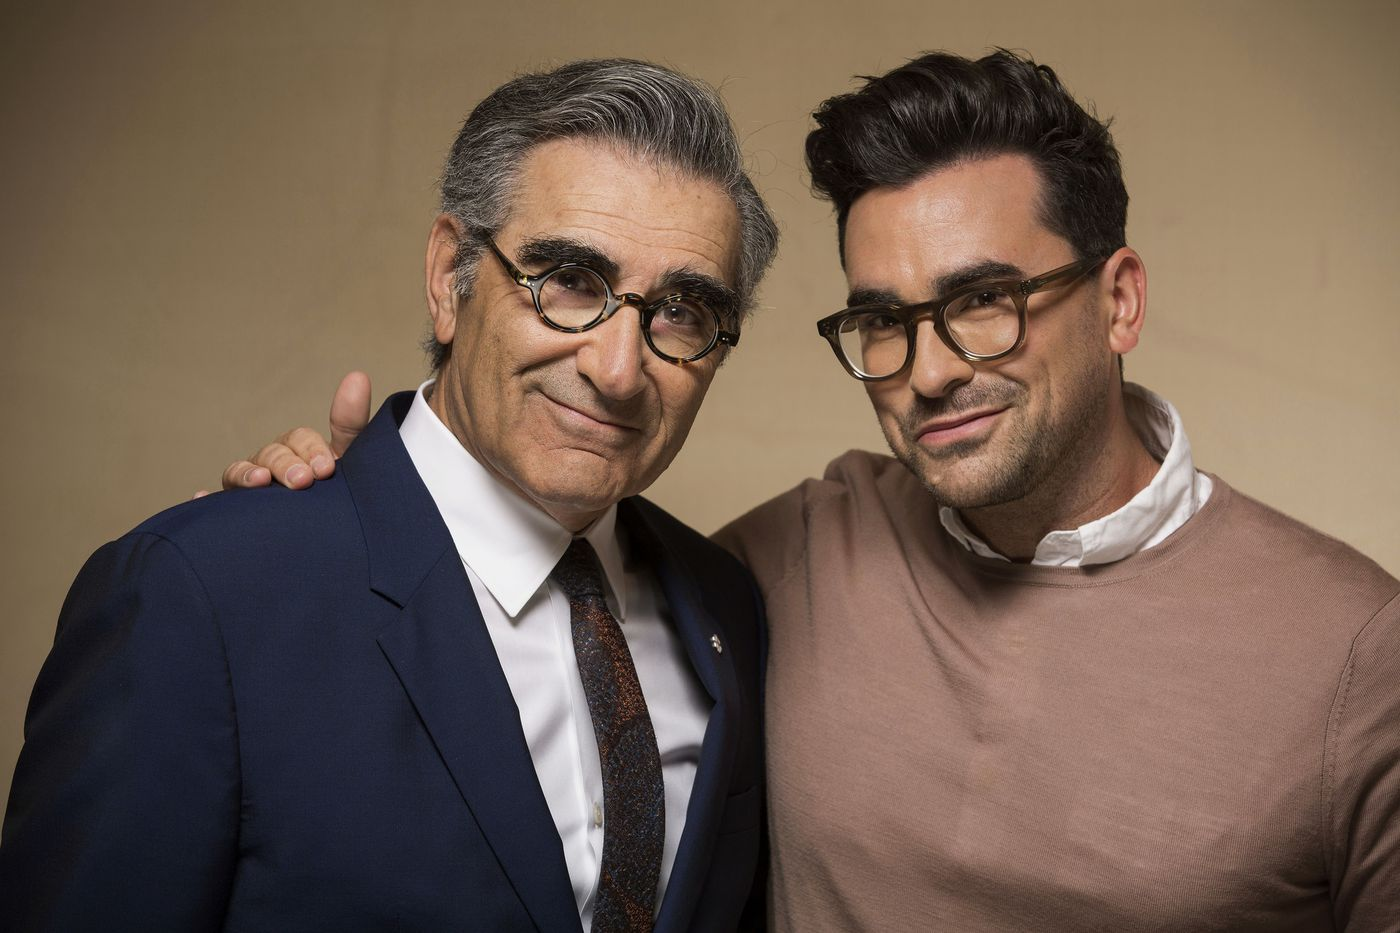 Dan and Eugene Levy are a real-life father and son comedy team who play father and son on  Schitt's Creek.